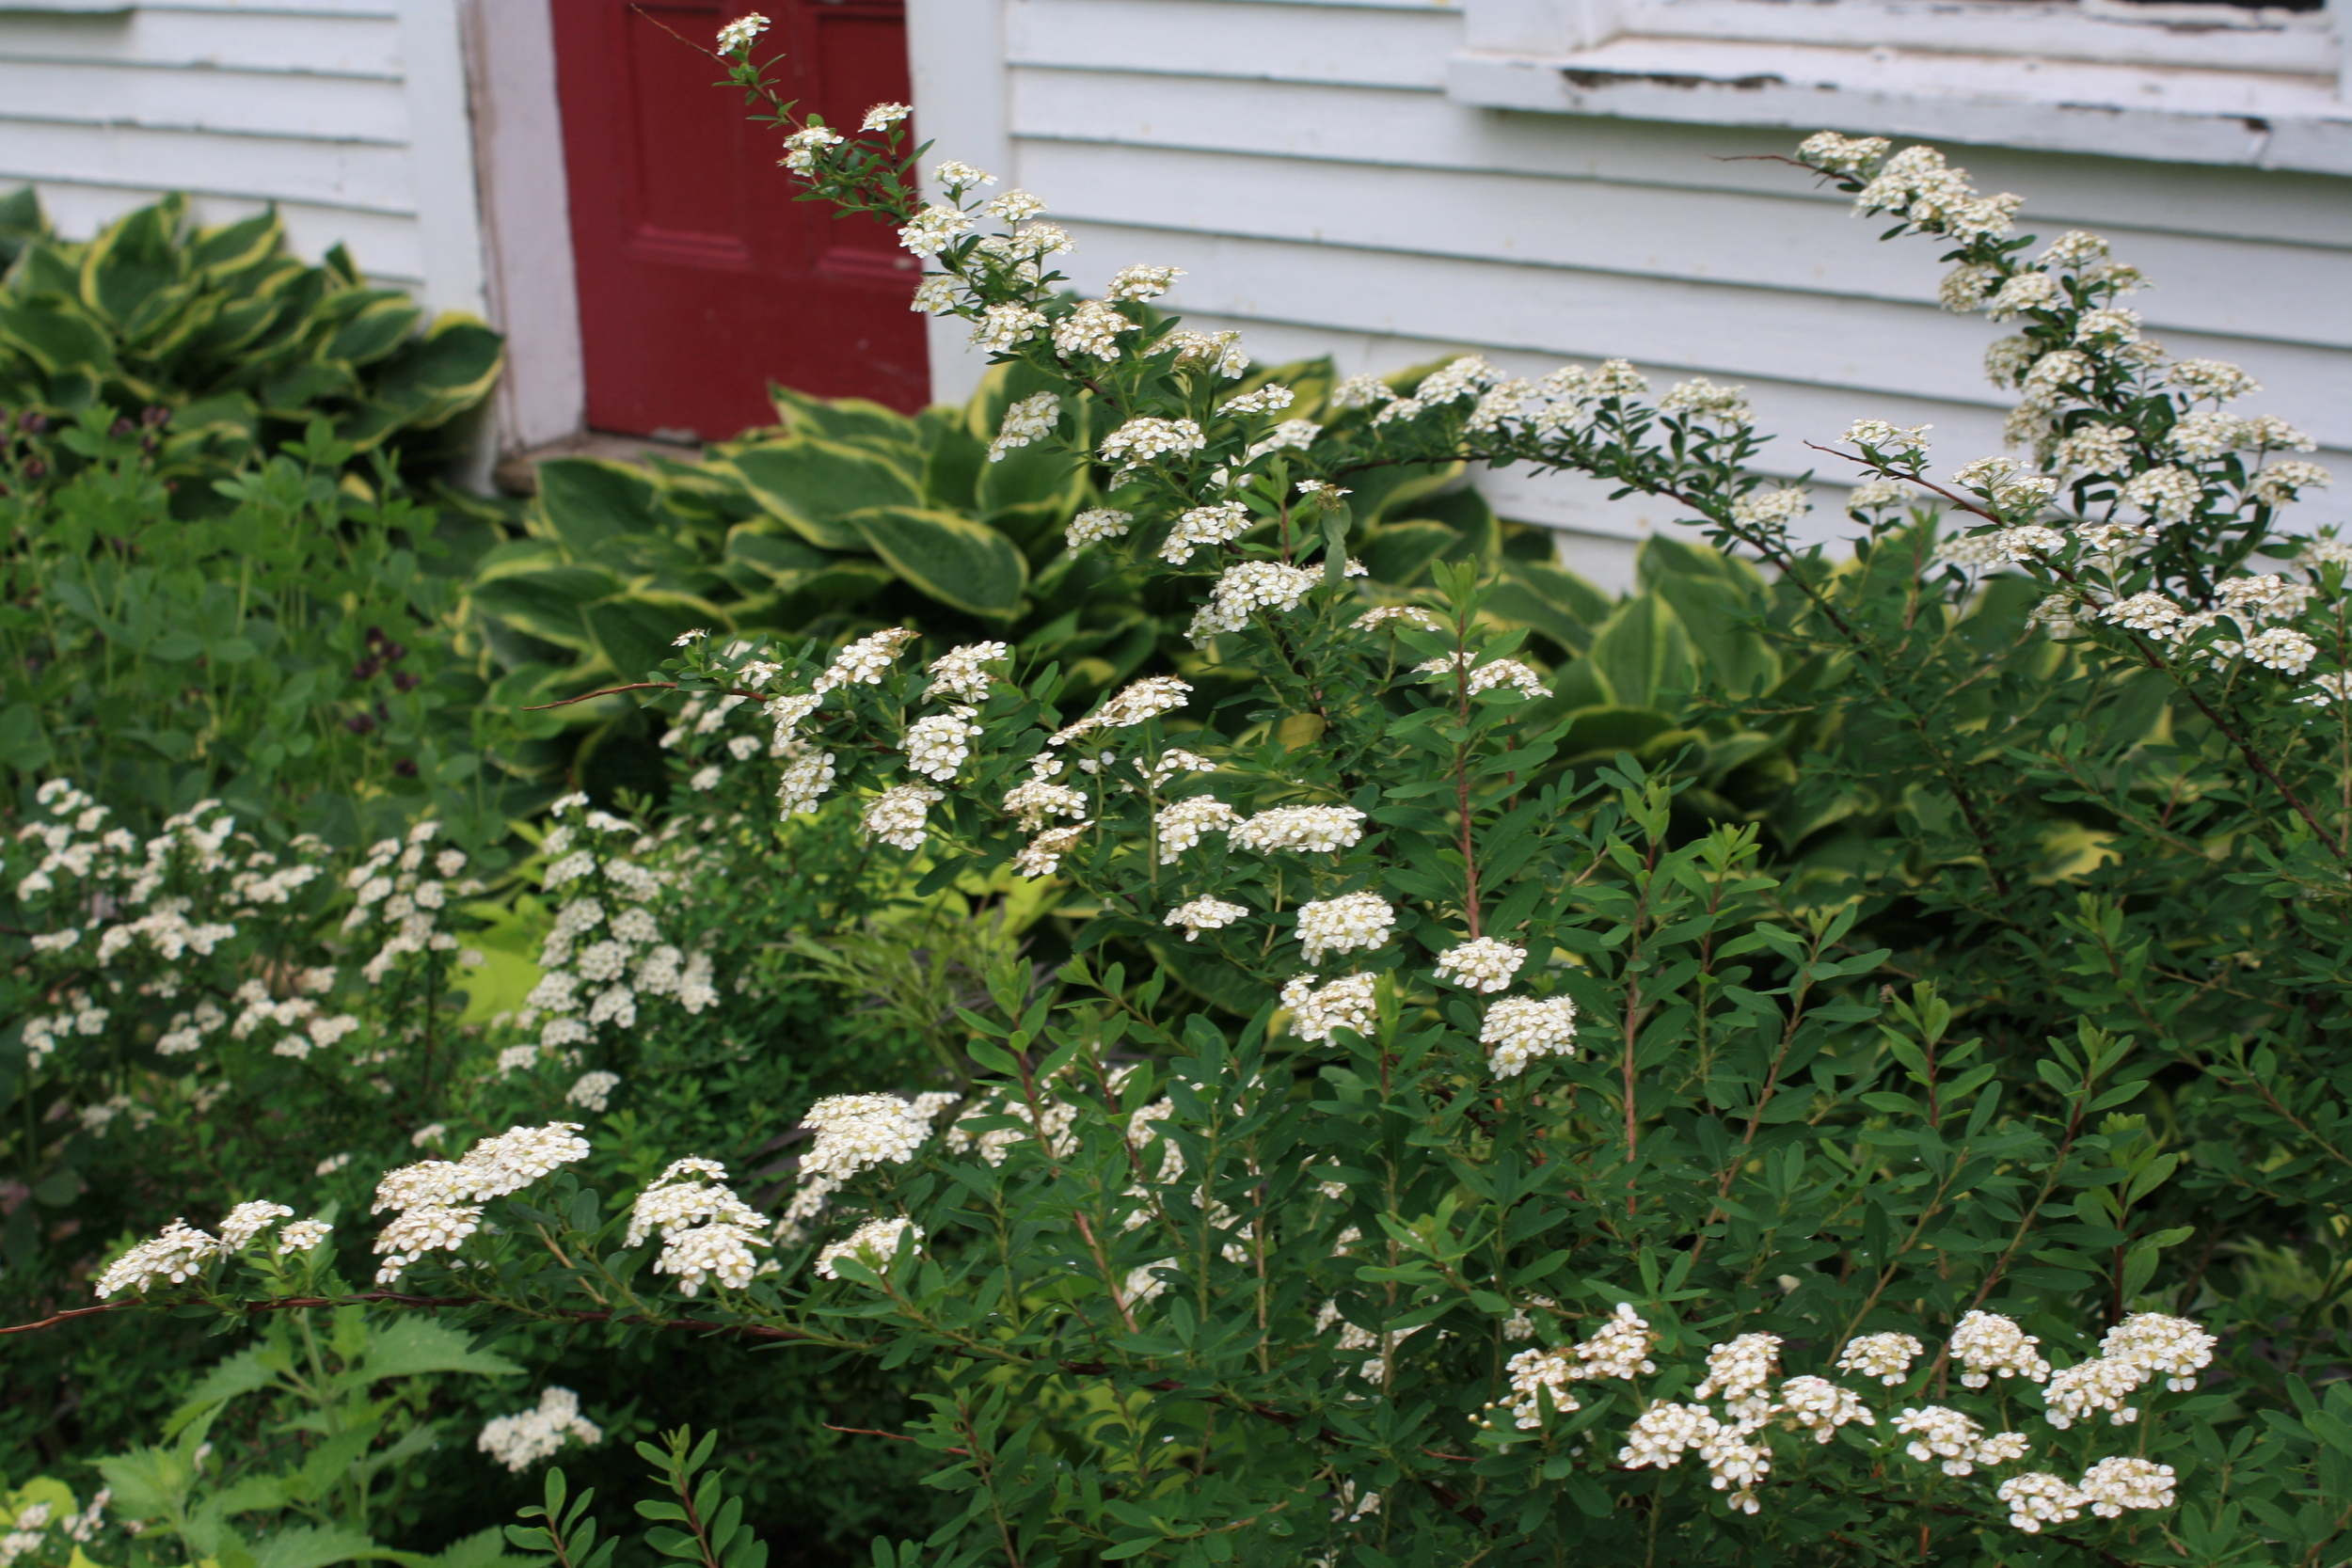 Spirea 'Snowmound' is a smaller variety of bridalwreath that only gets 3' tall